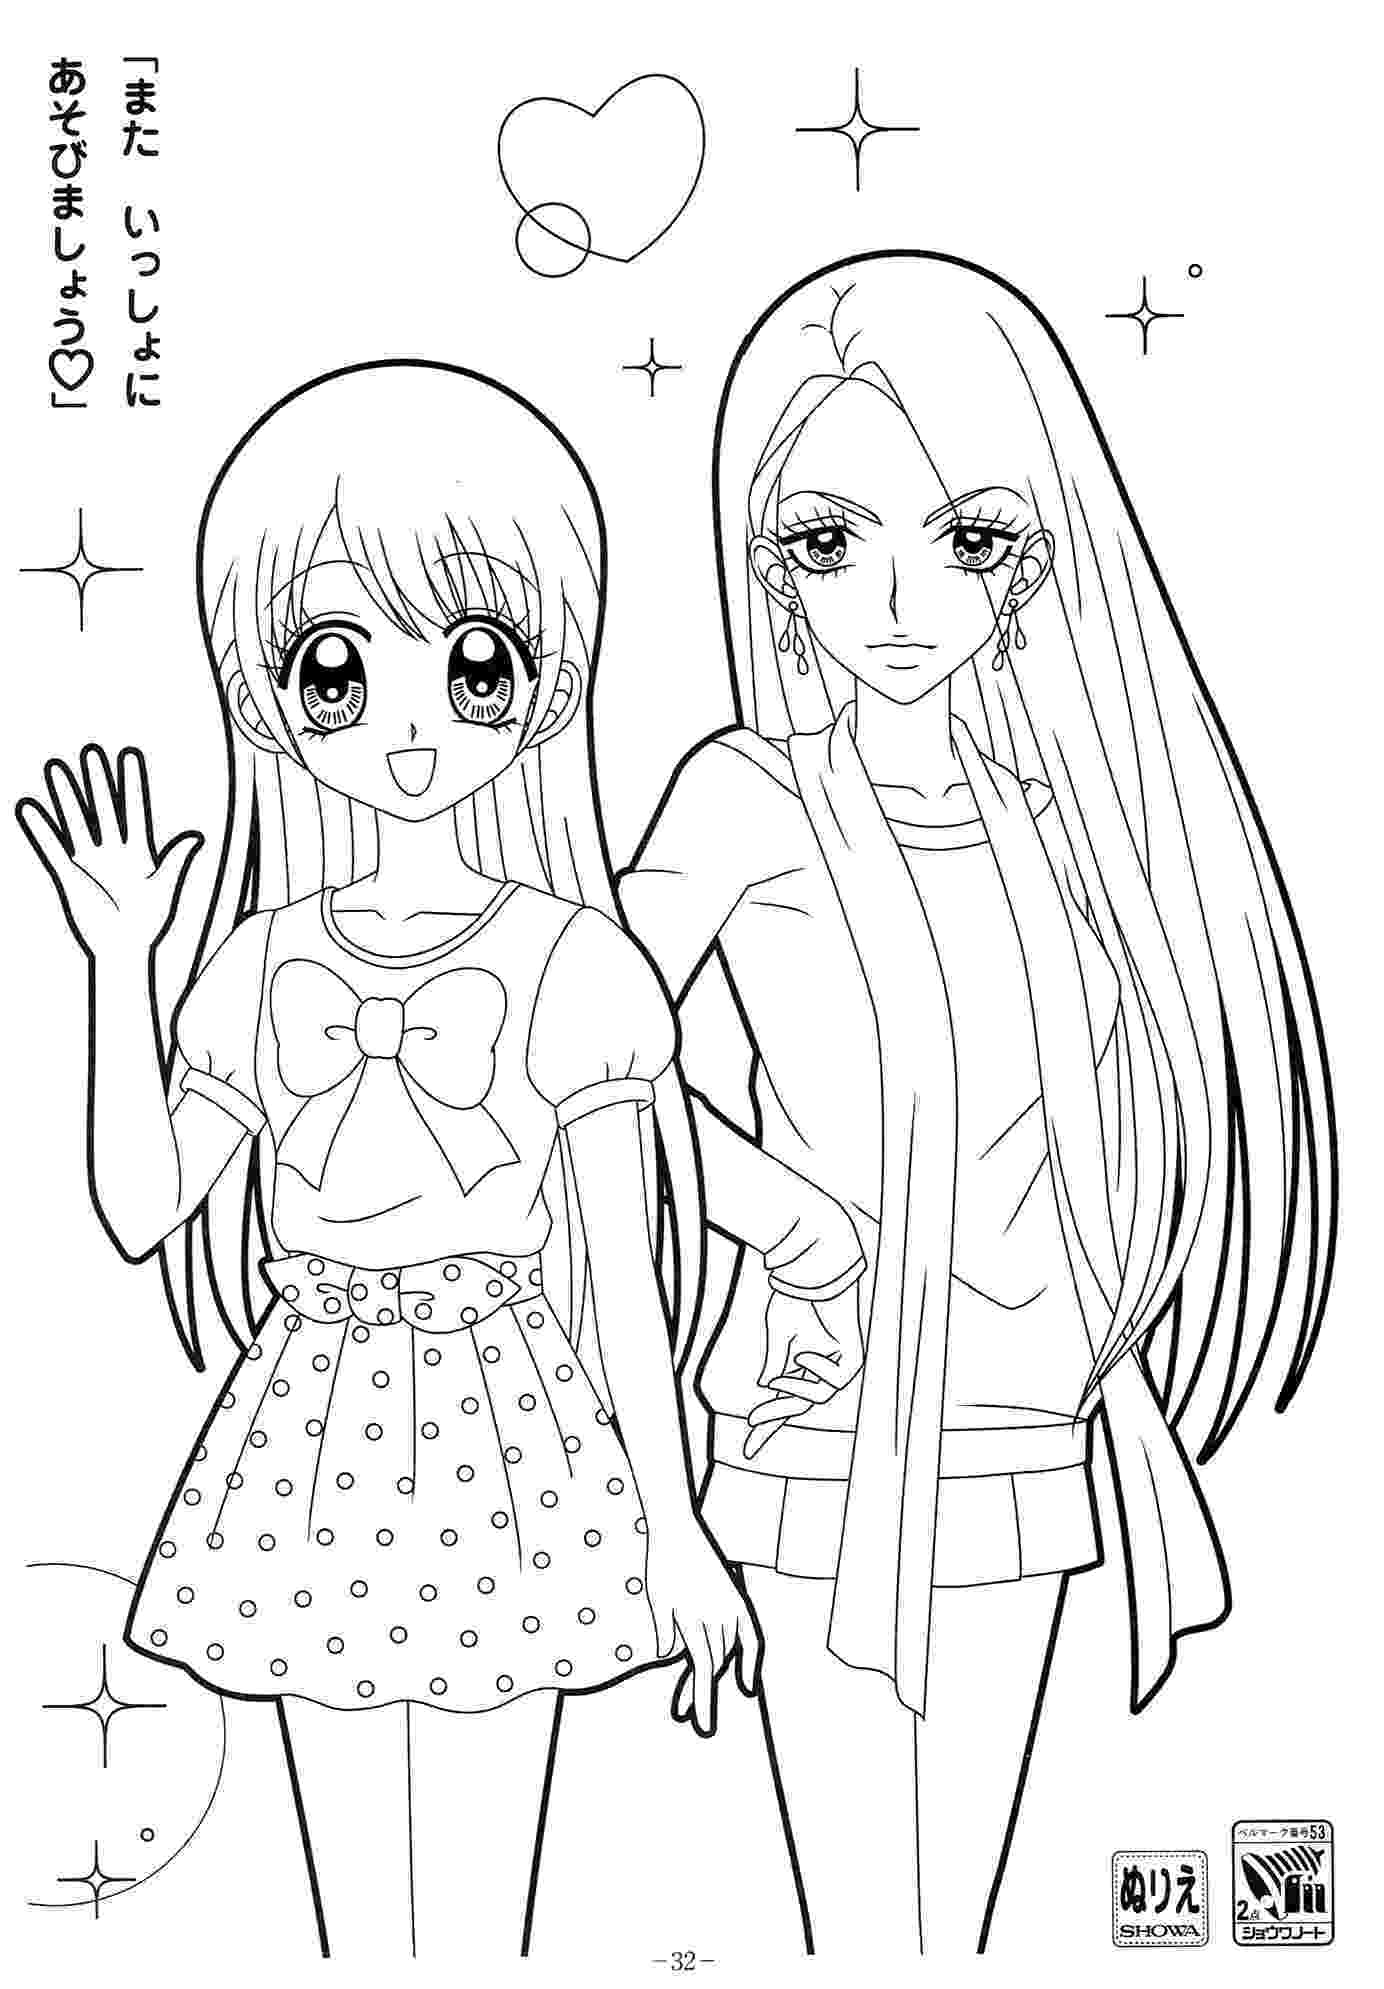 anime colouring anime coloring pages on pinterest coloring pages for colouring anime